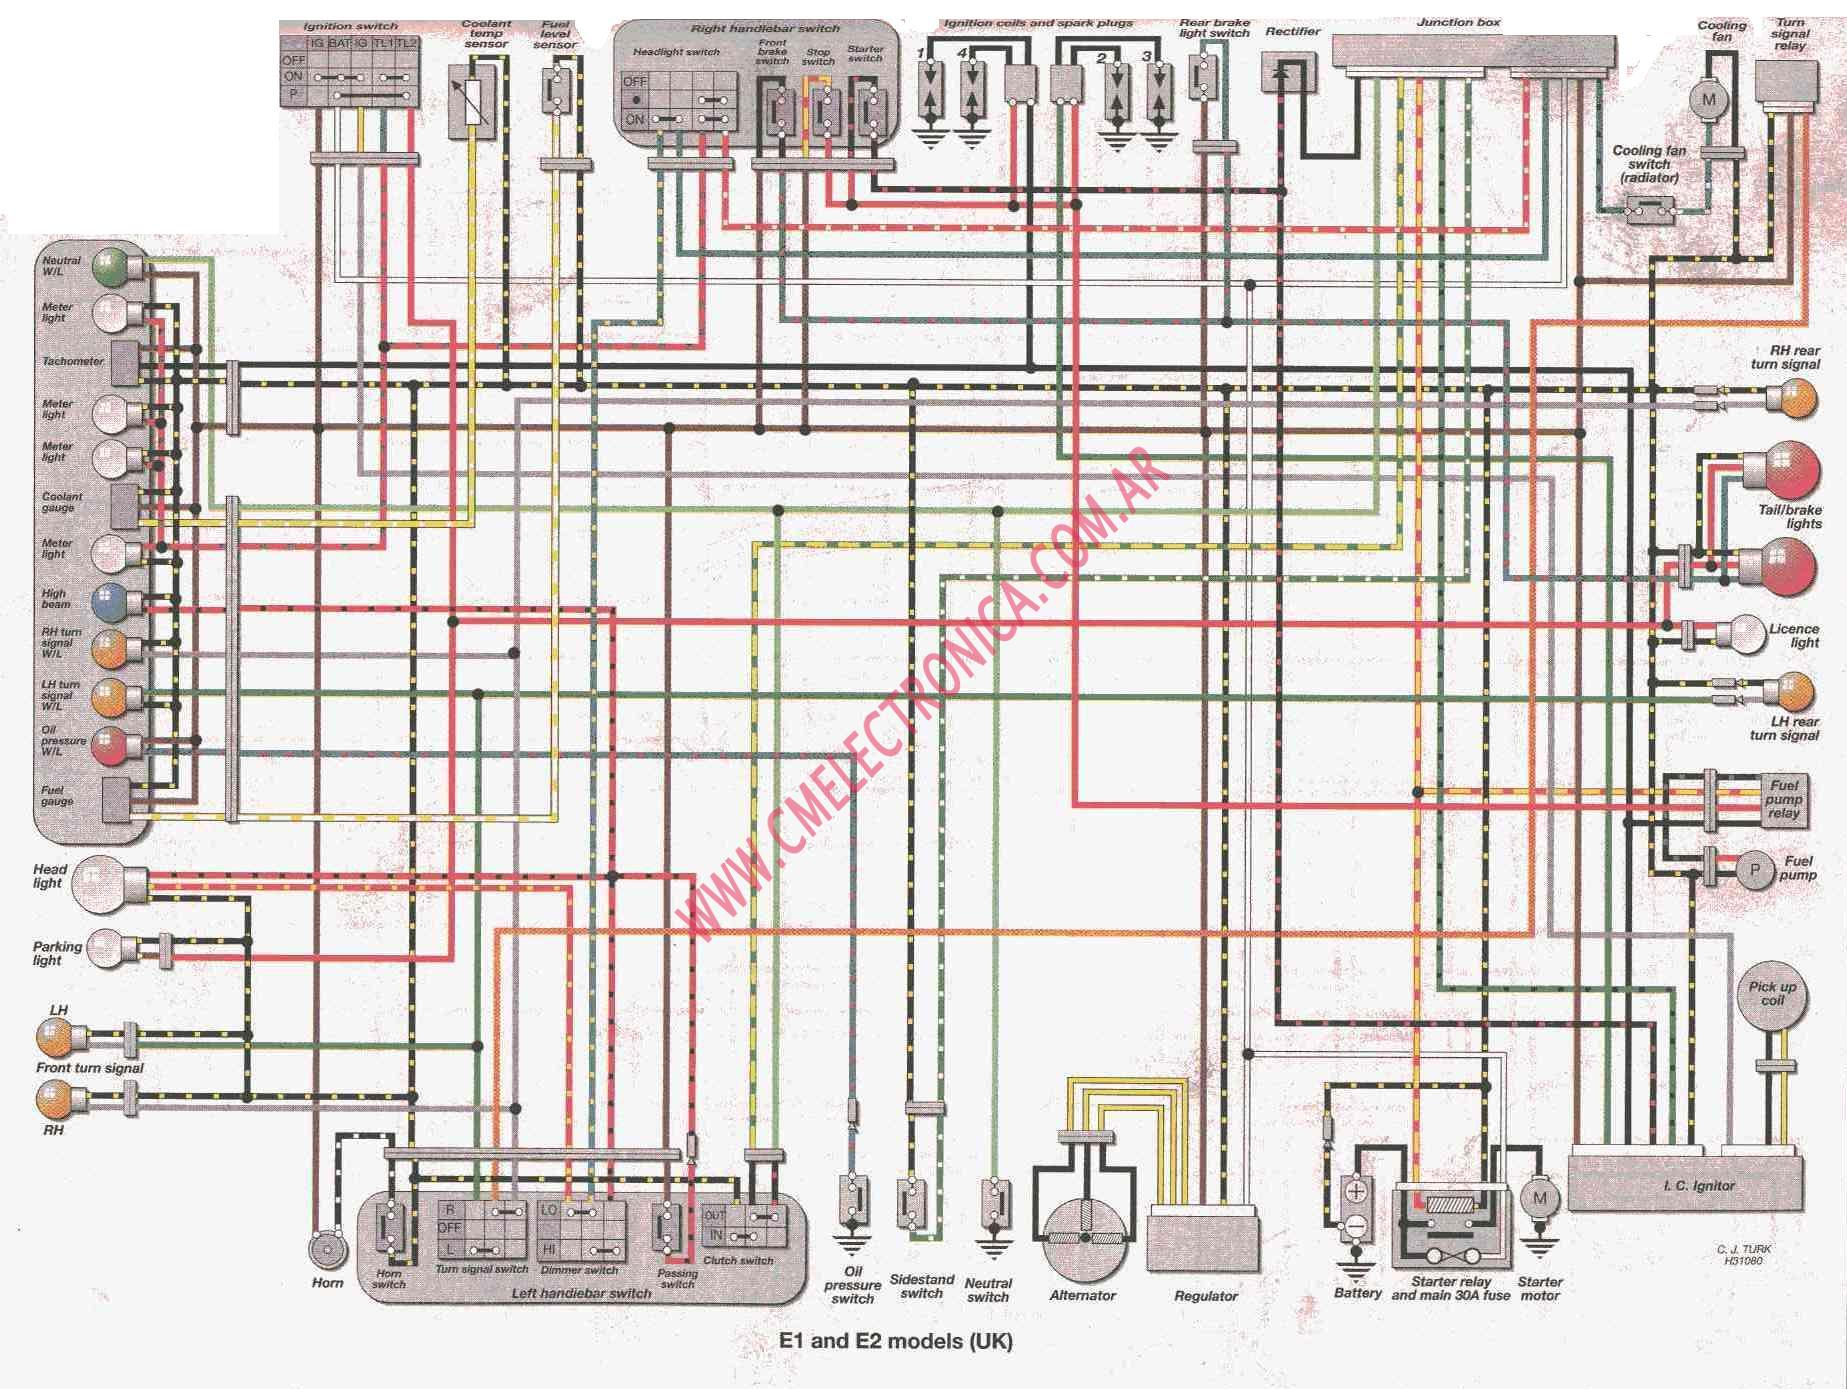 Yamaha R6 Wiring Diagram 93 Schematic Fz8 2000 Service Manual Pdf